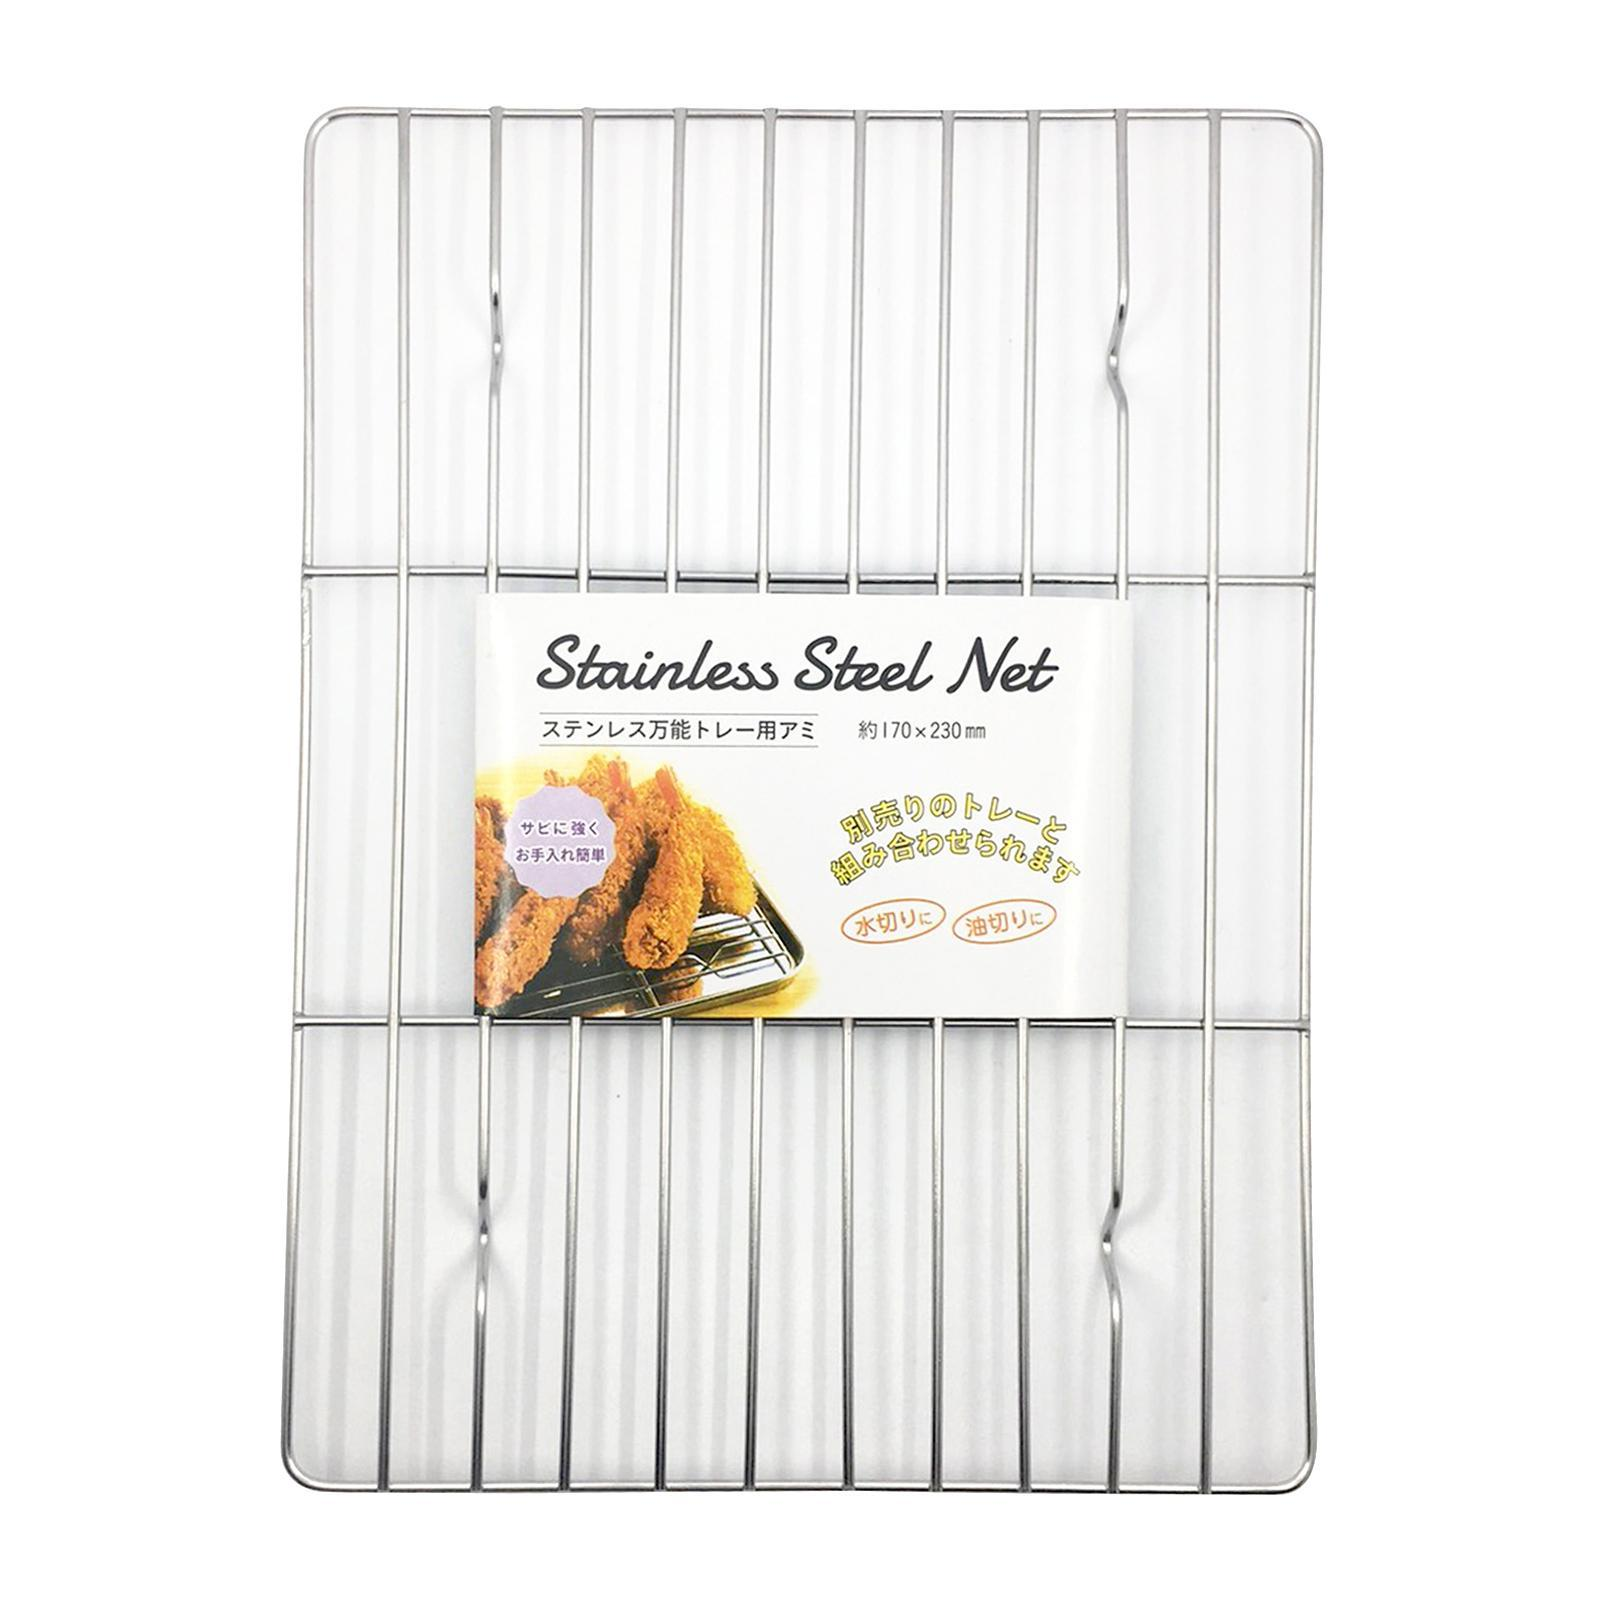 Echo Stainless Steel Net For Kitchen Tray